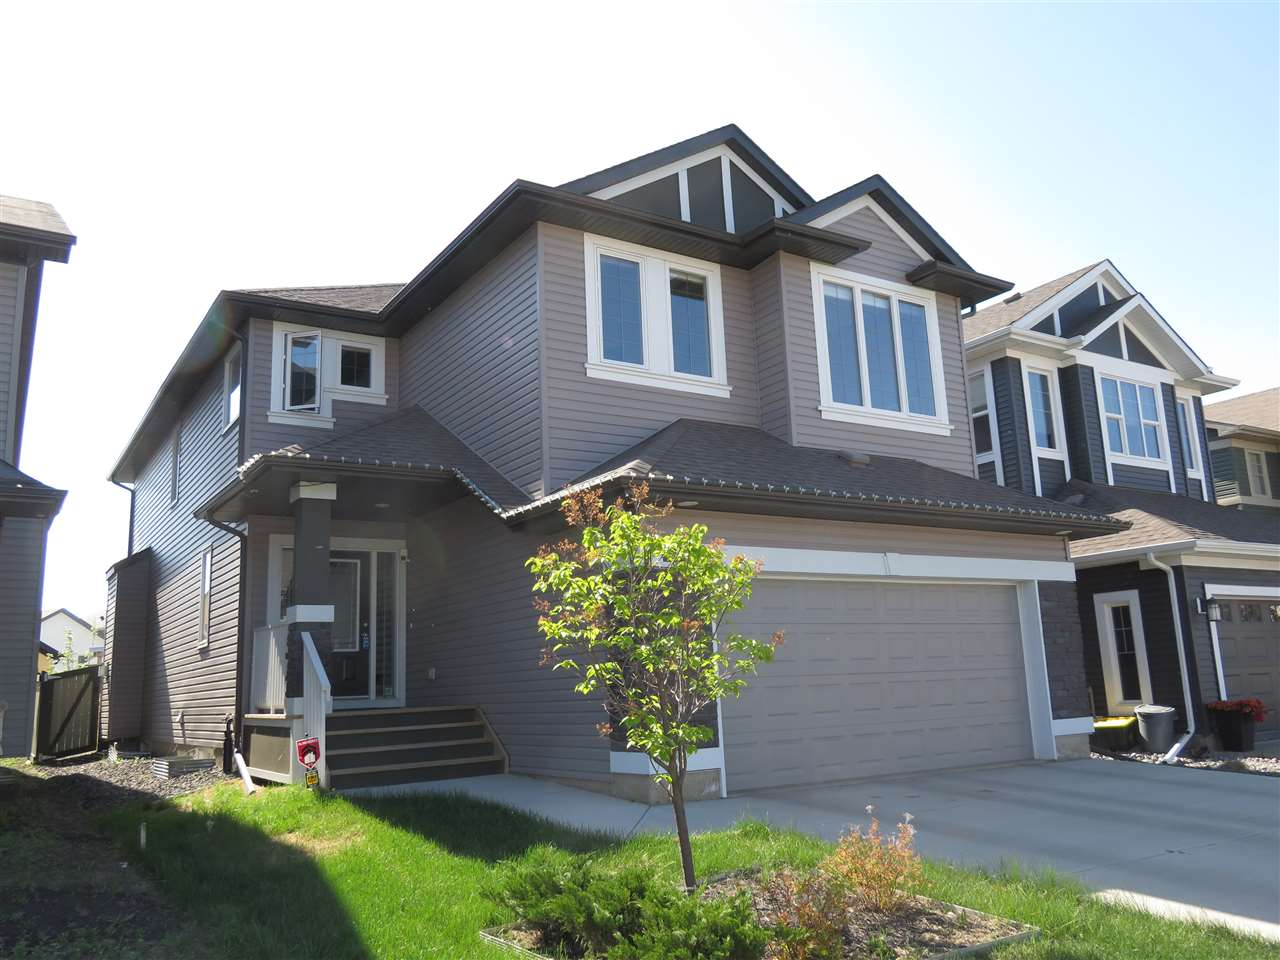 Main Photo: 3707 WESTCLIFF Way SW in Edmonton: Zone 56 House for sale : MLS®# E4112354